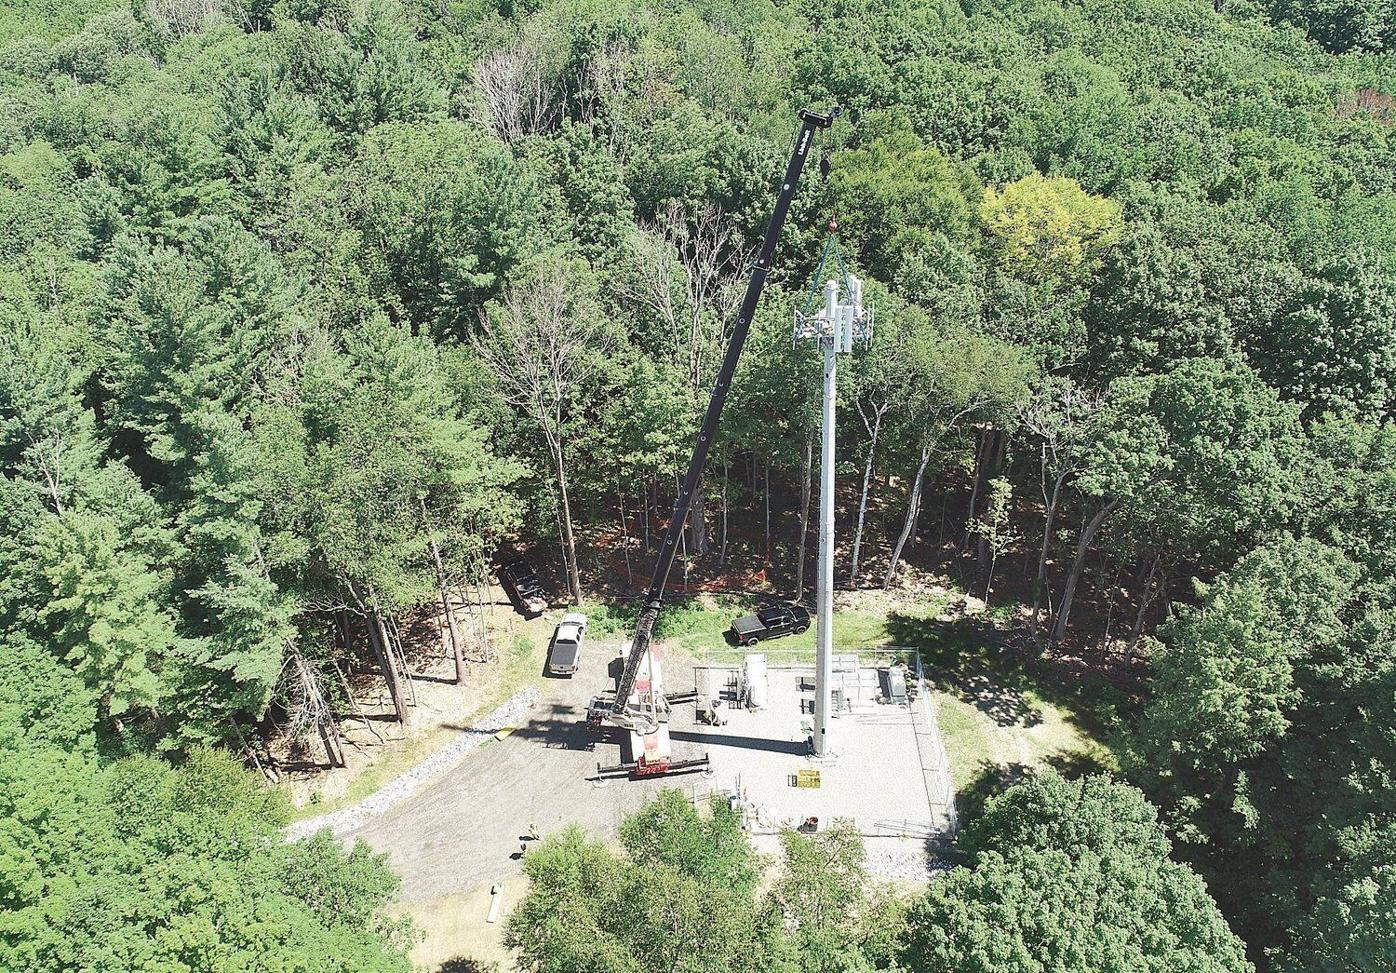 As cell tower rises, neighborhood challenge to Pittsfield project faces new legal test (copy)